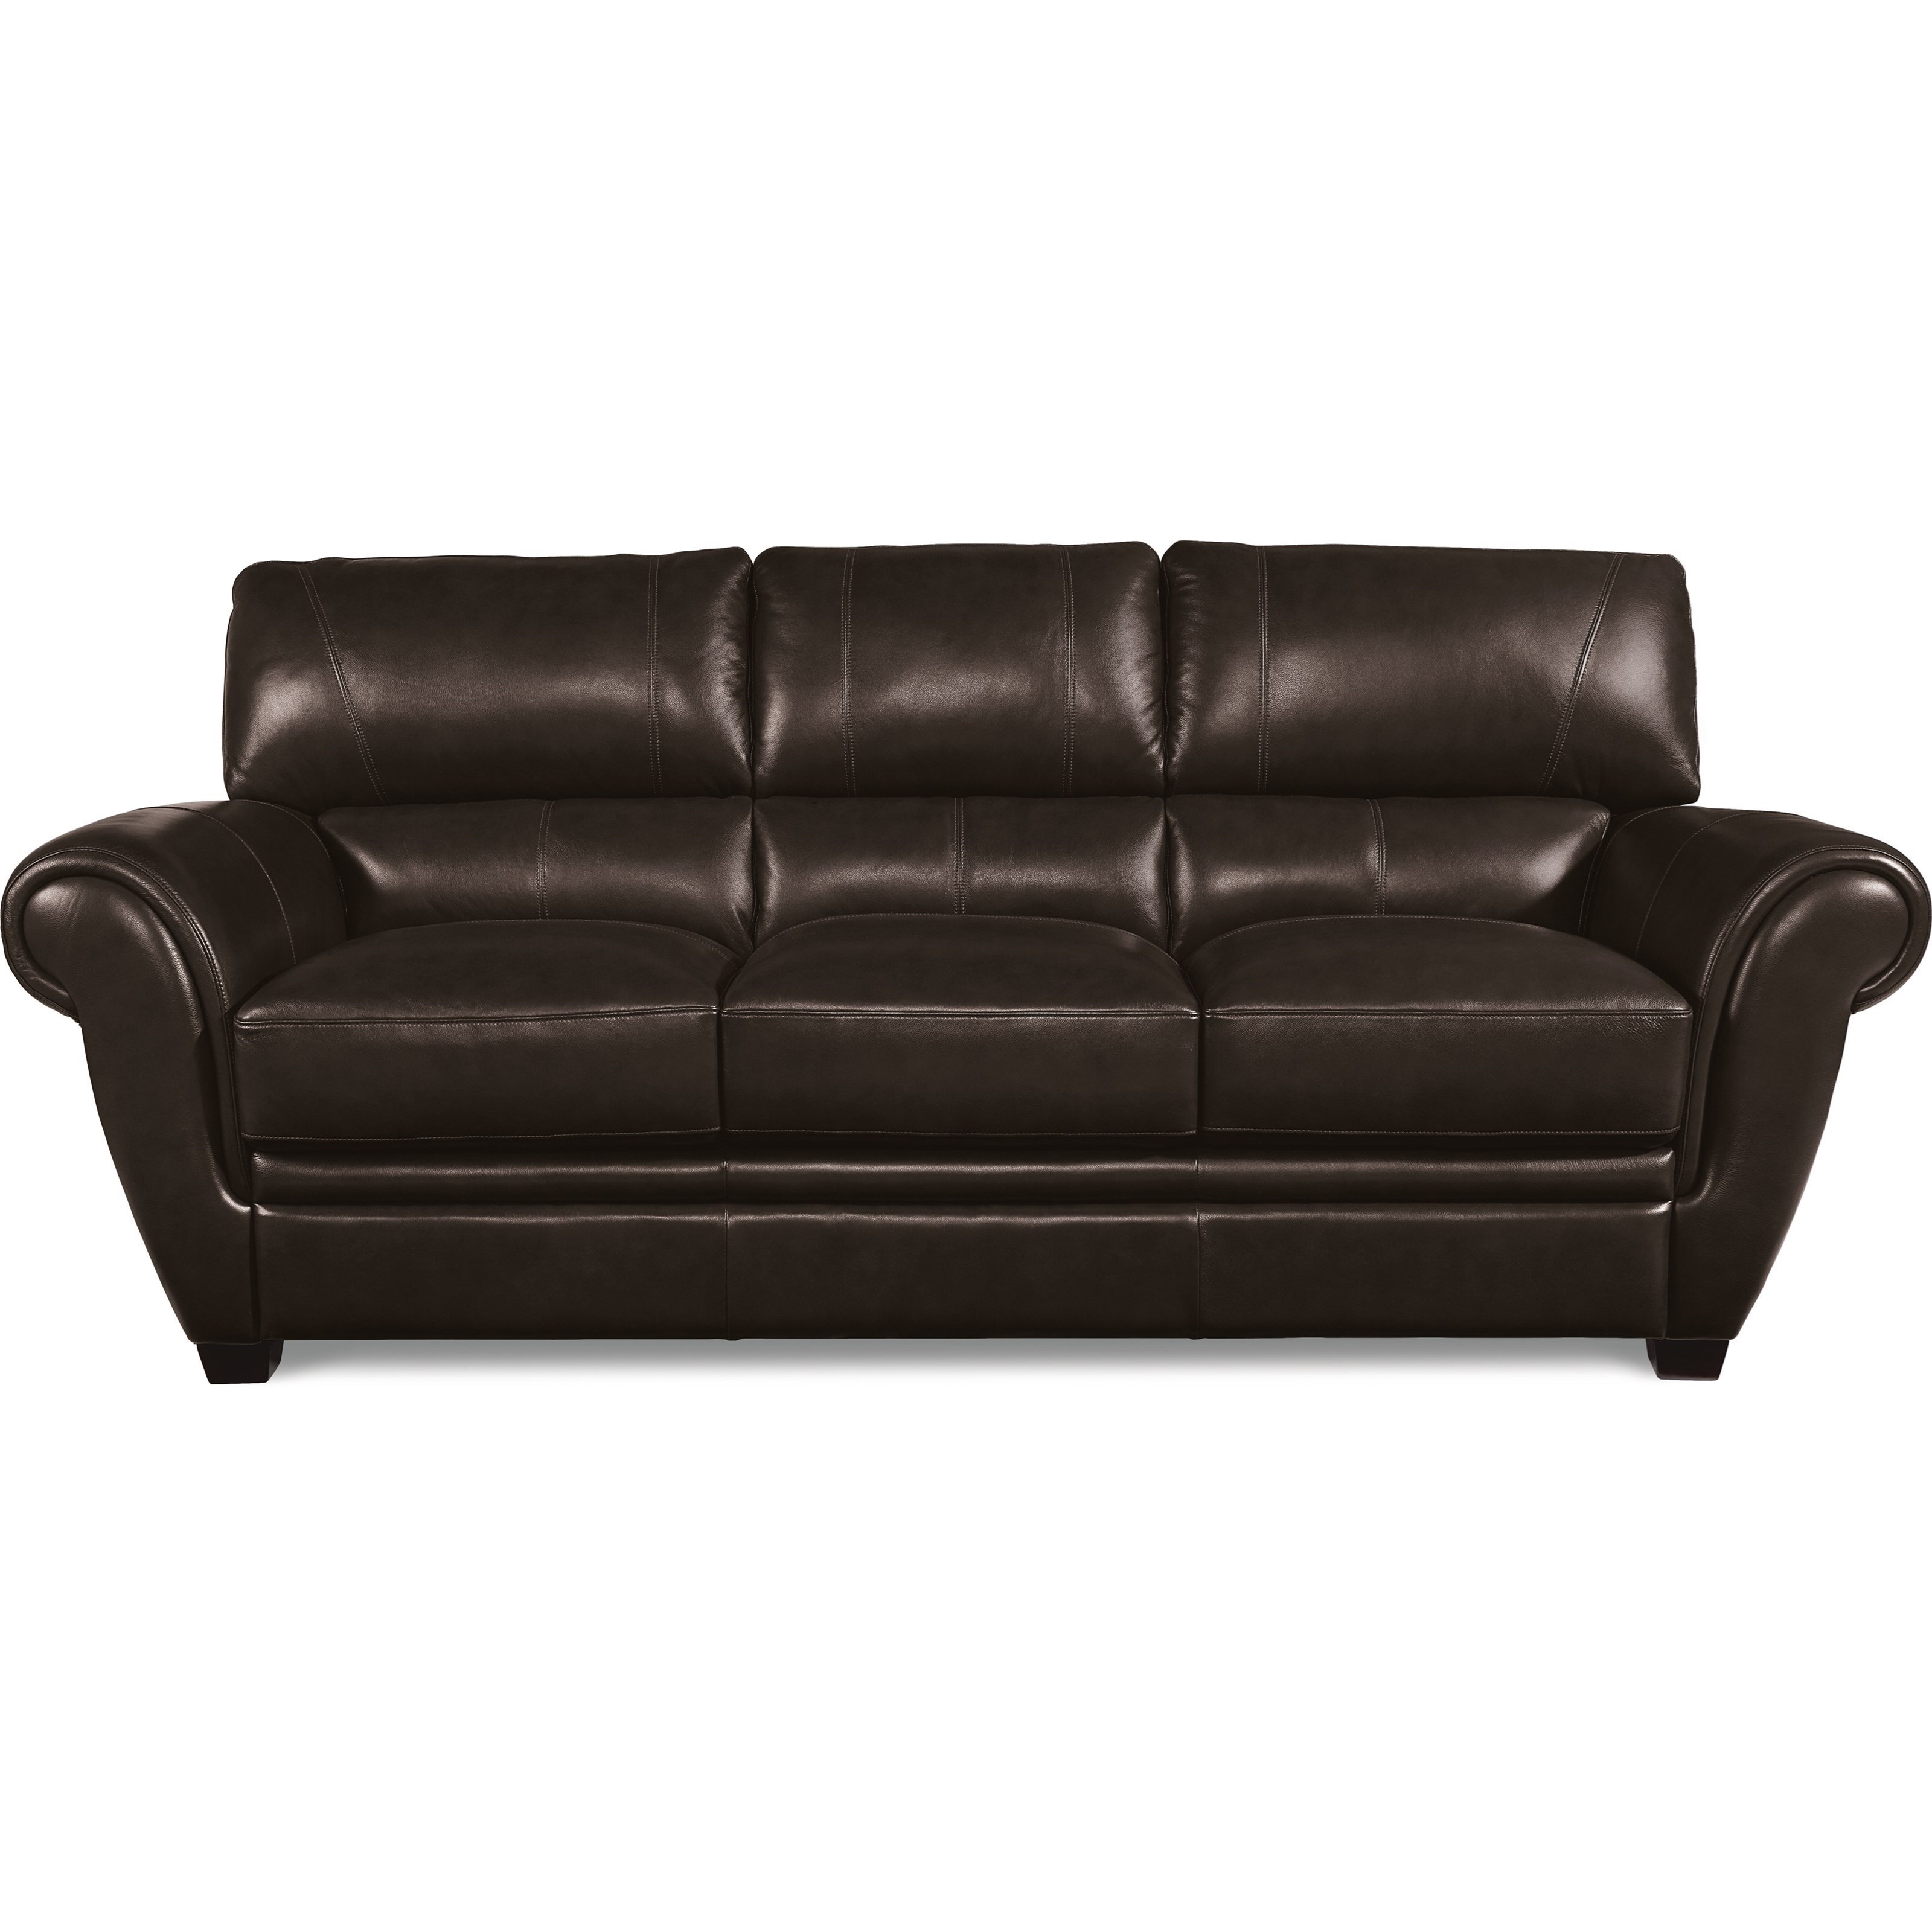 Leather Sofa La Z Boy La Z Boy Nitro Leather Match Sofa Lindy S Furniture Company Sofas